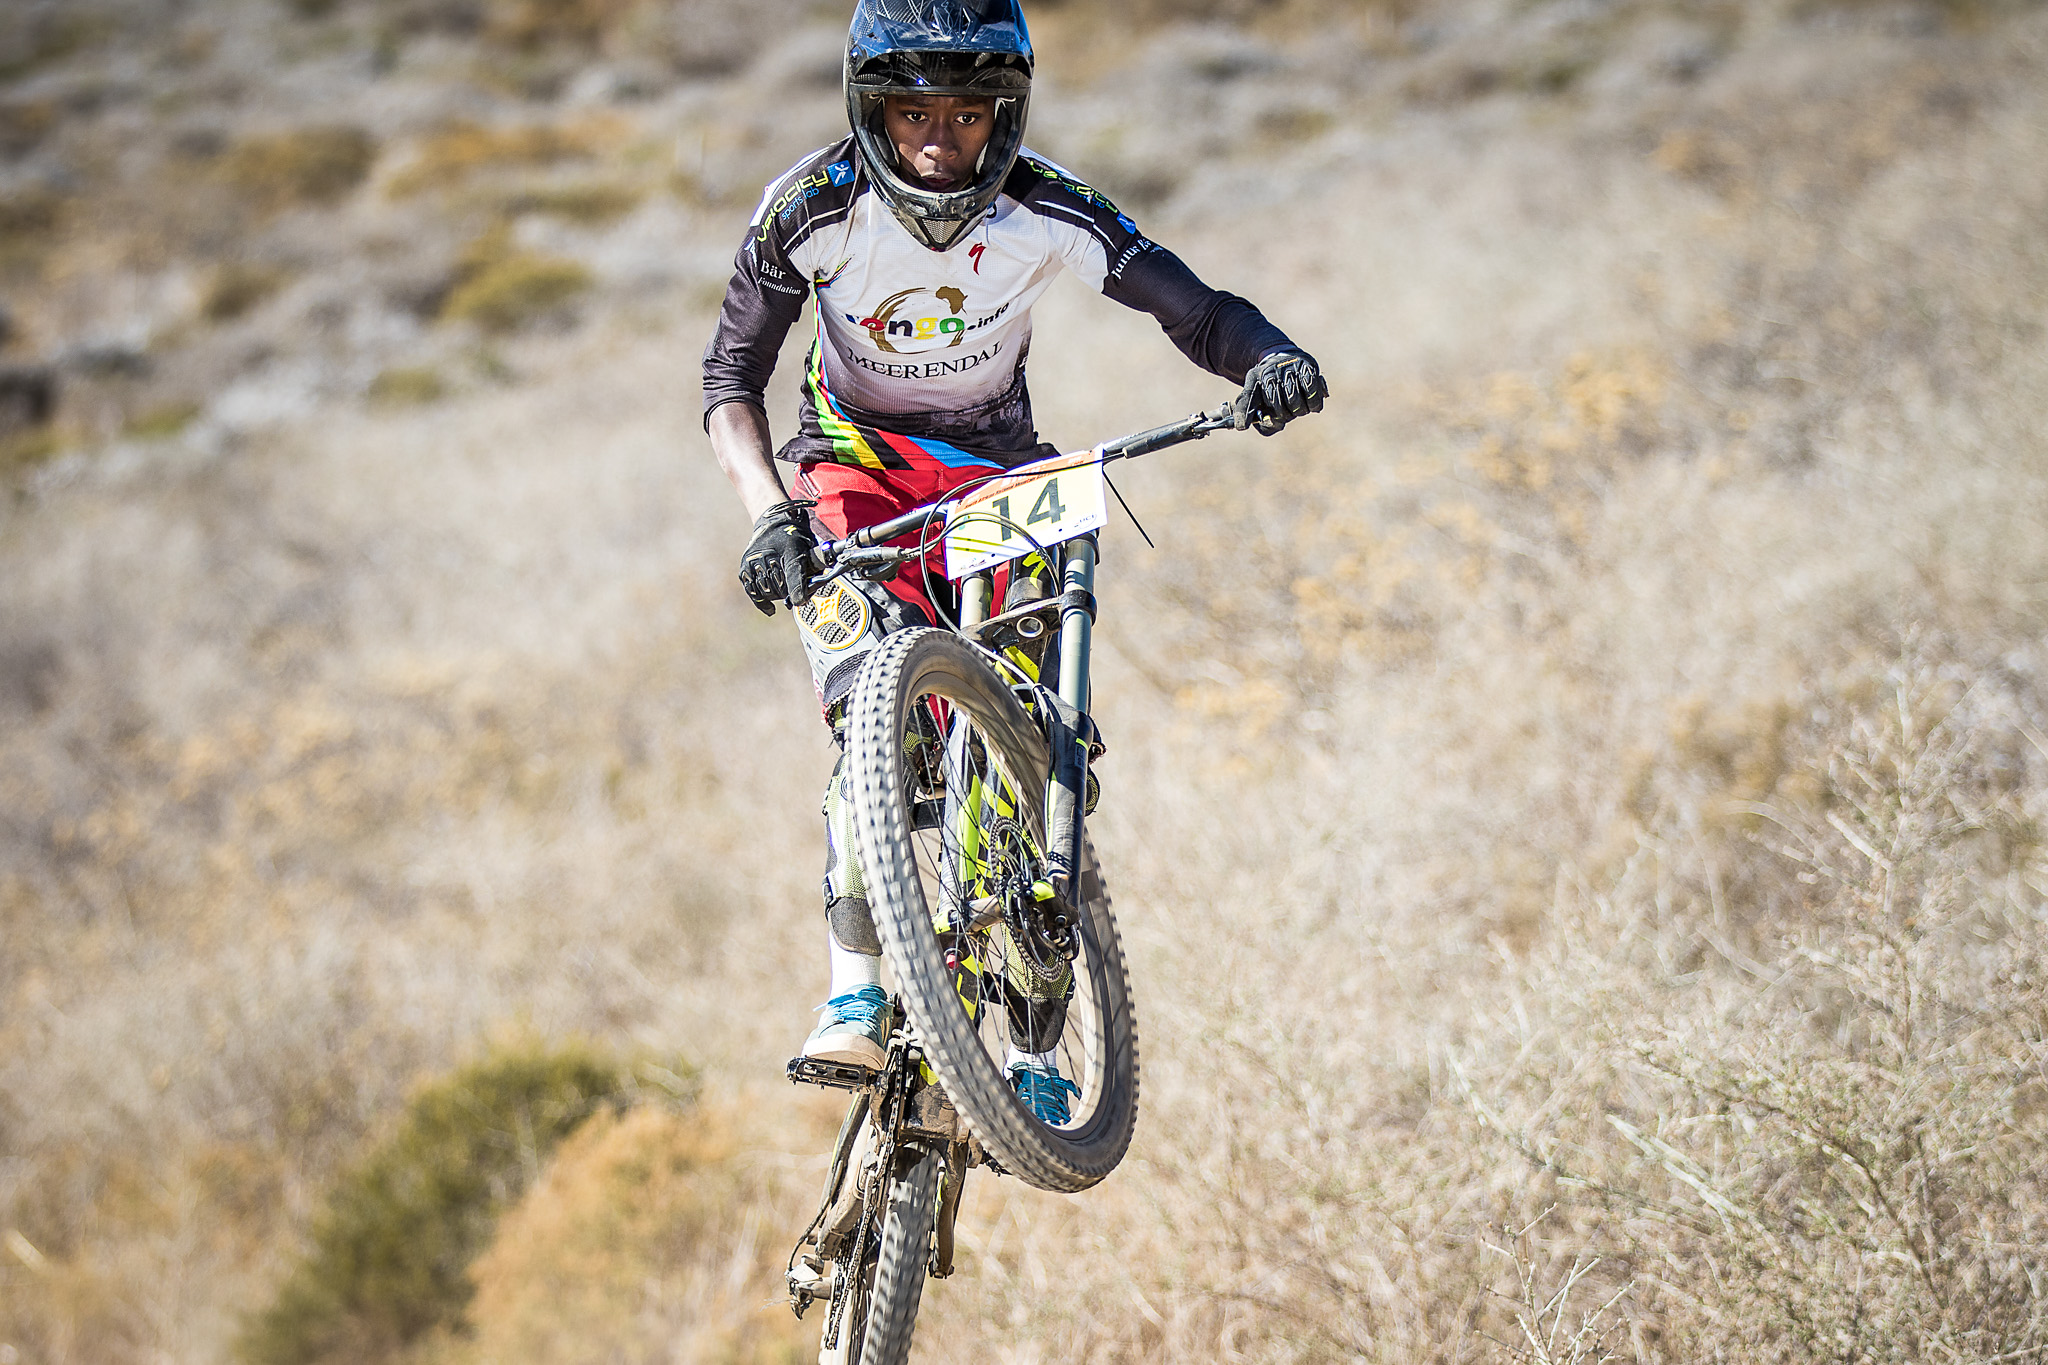 Bonga Notoko, who ridesfor Songo.Info at t he Stihl 2015 SA MTB Cup Series which took place in Contermanskloof in the Western Cape on Sunday 22 February 2015   .  Chris Hitchcock | PhotoSport